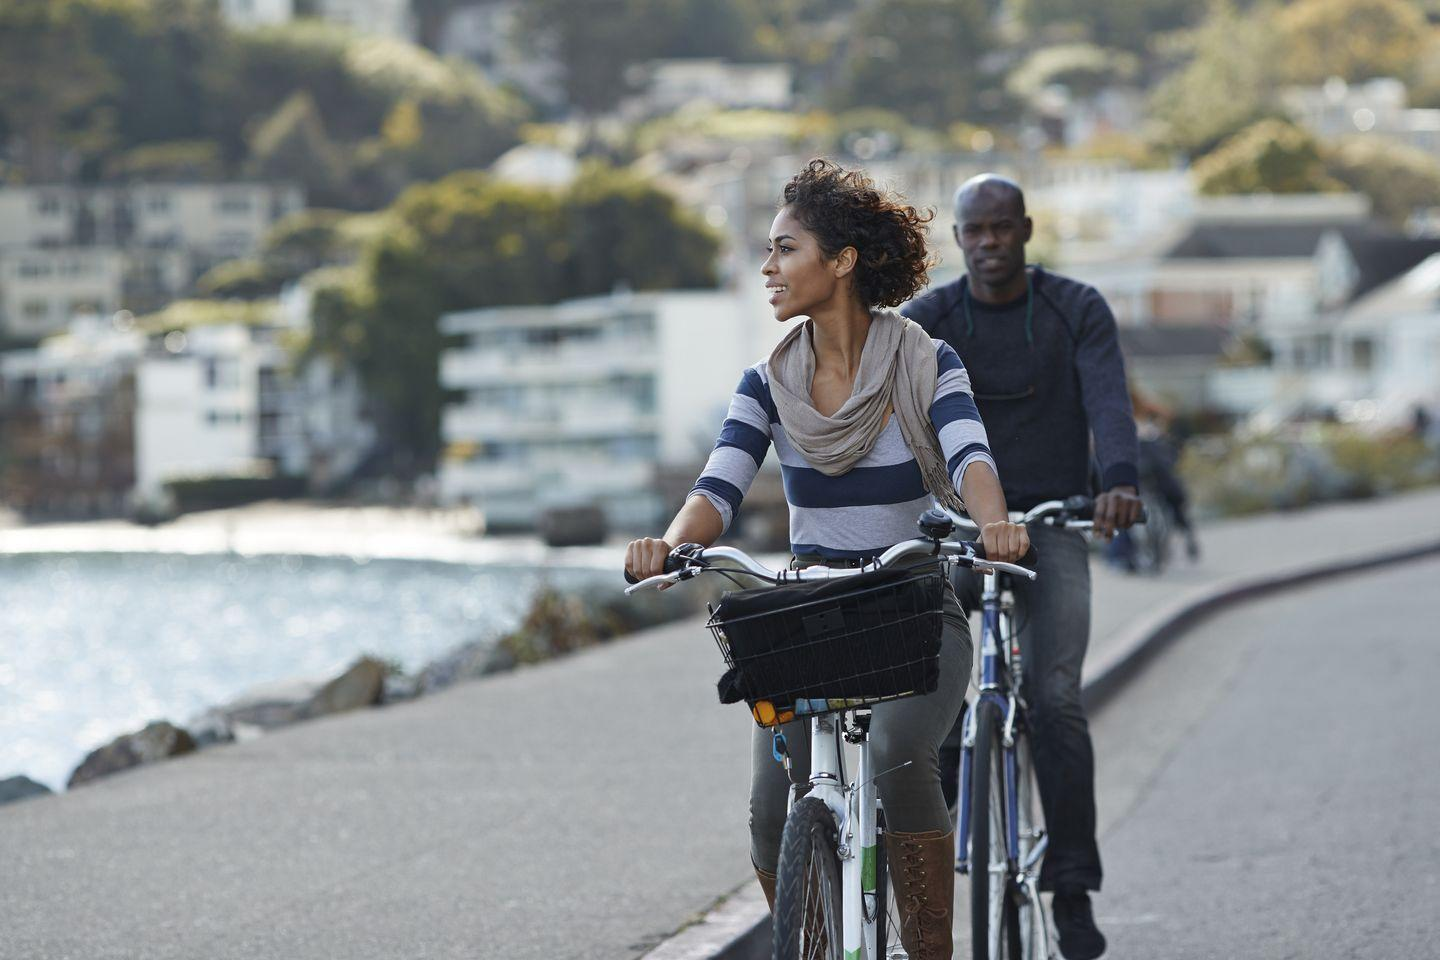 "<p>Get active on your day off and go for a bike ride before all the eating and partying begins.</p><p><strong>RELATED: </strong><a href=""https://www.womansday.com/home/decorating/g2441/fourth-of-july-decorations/"" rel=""nofollow noopener"" target=""_blank"" data-ylk=""slk:Festive 4th of July Decorations That'll Show Off Your Pride"" class=""link rapid-noclick-resp"">Festive 4th of July Decorations That'll Show Off Your Pride</a></p>"